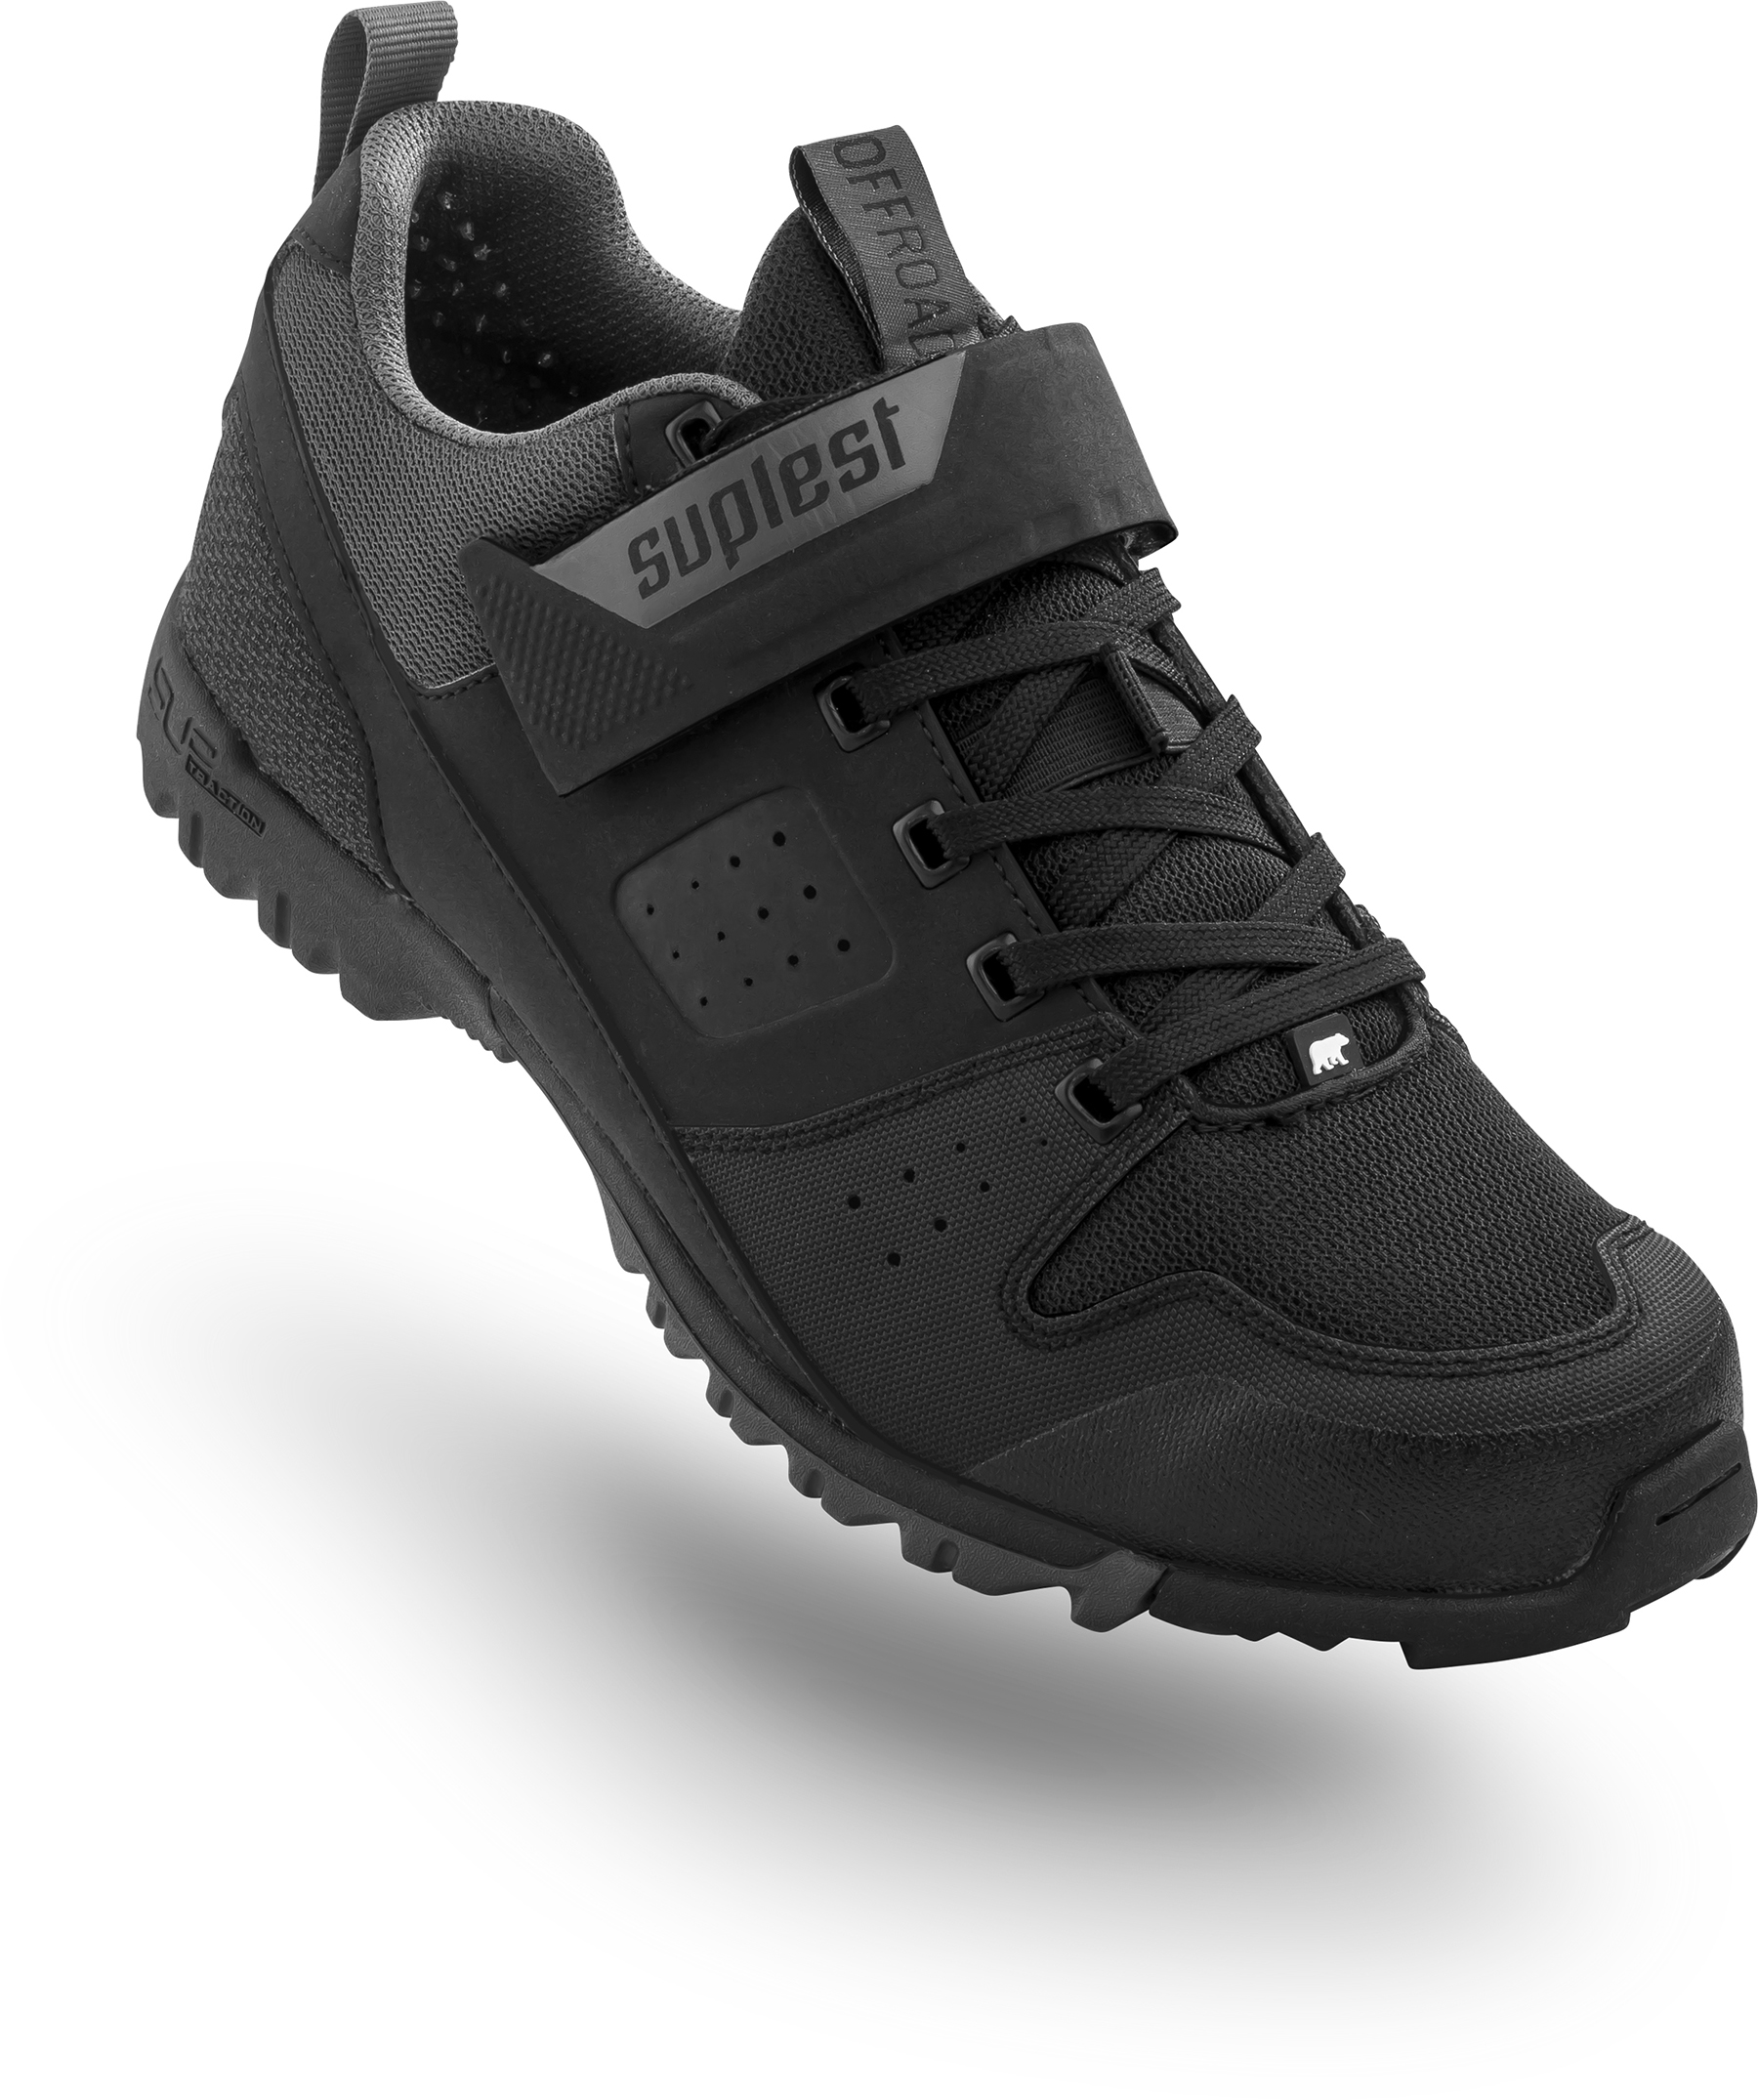 Suplest Offroad Suptraction Shoe | Shoes and overlays